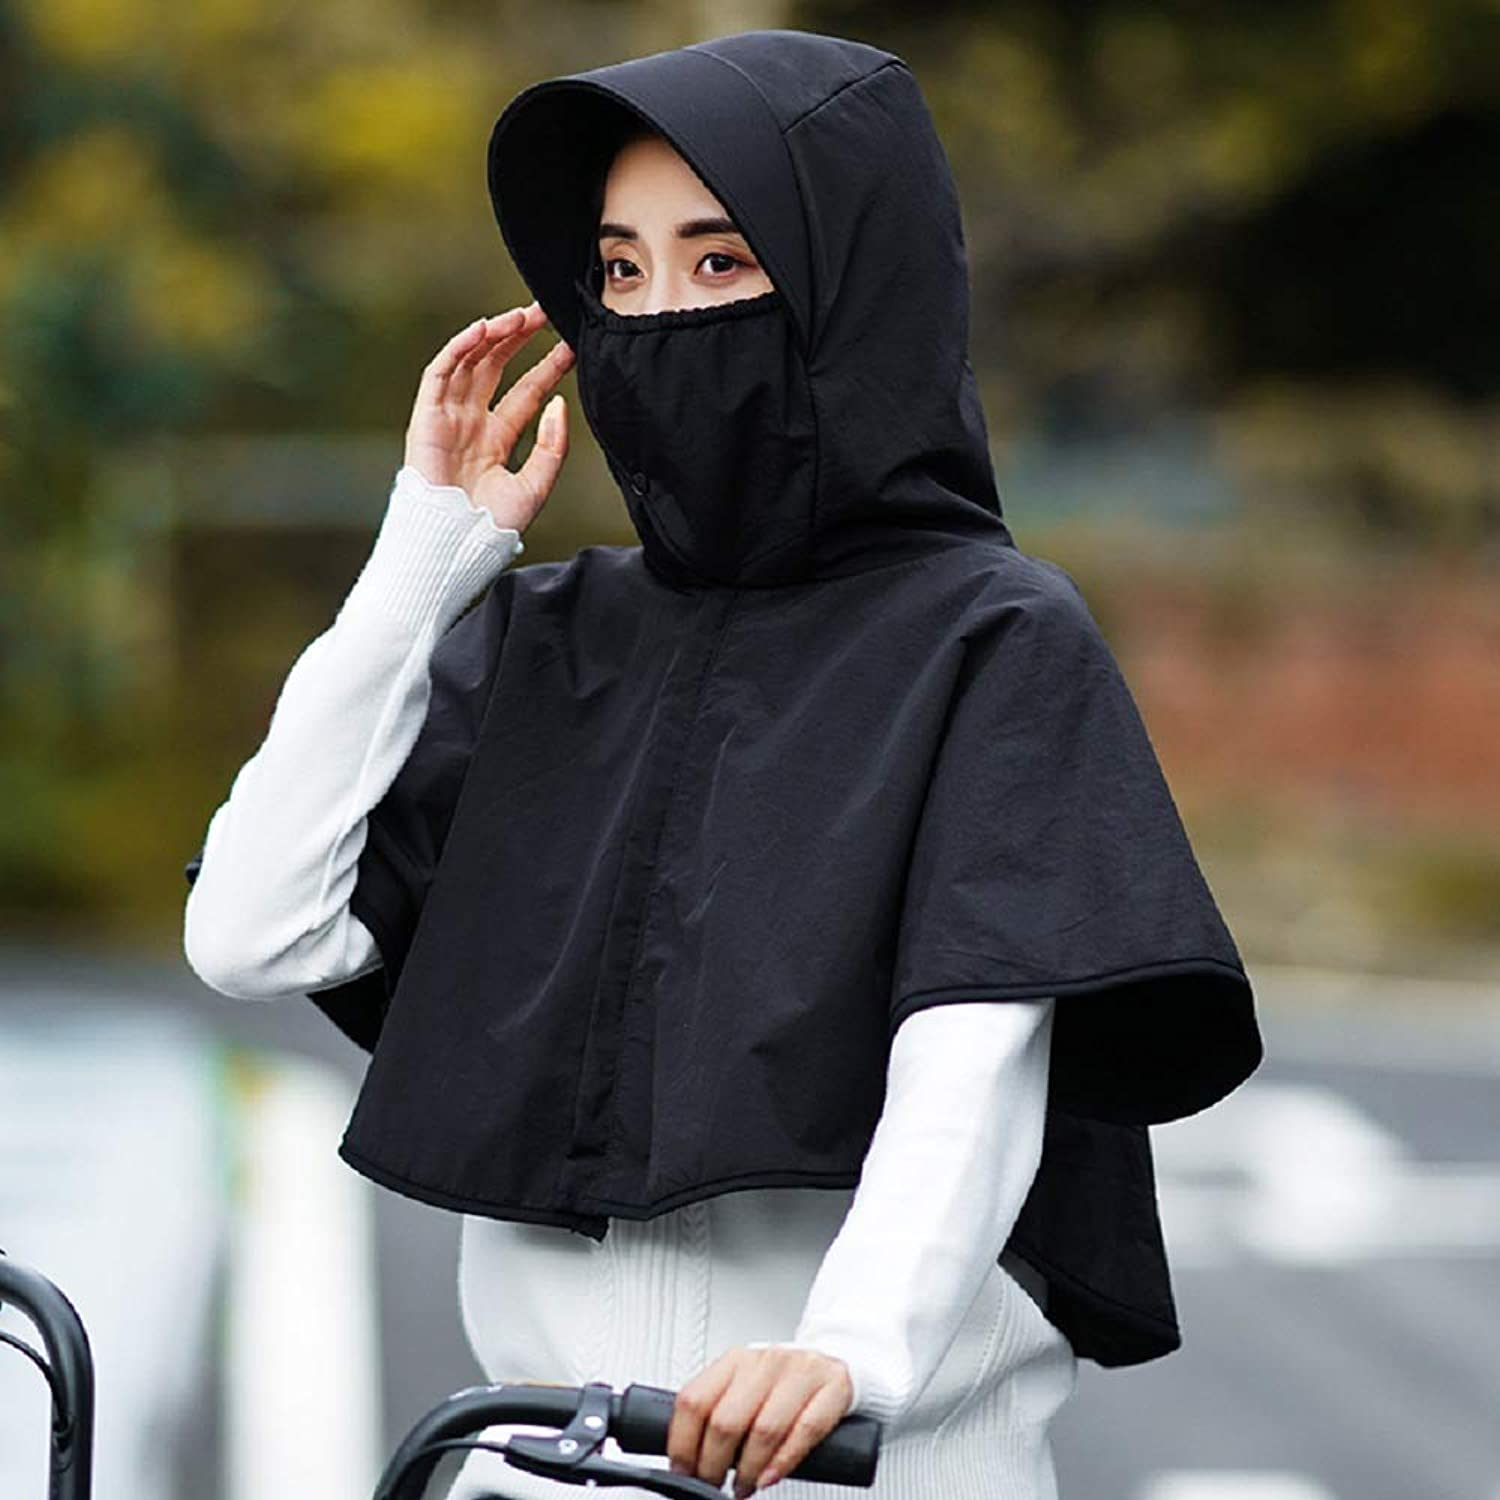 Beach Hat Outdoor hat Female Autumn and Winter, Cycling Cover face Earmuffs, Windproof Cold Warm hat, mask Collar one-Piece Hood Cap Summer Sun Hat (color   6, Size   cm)